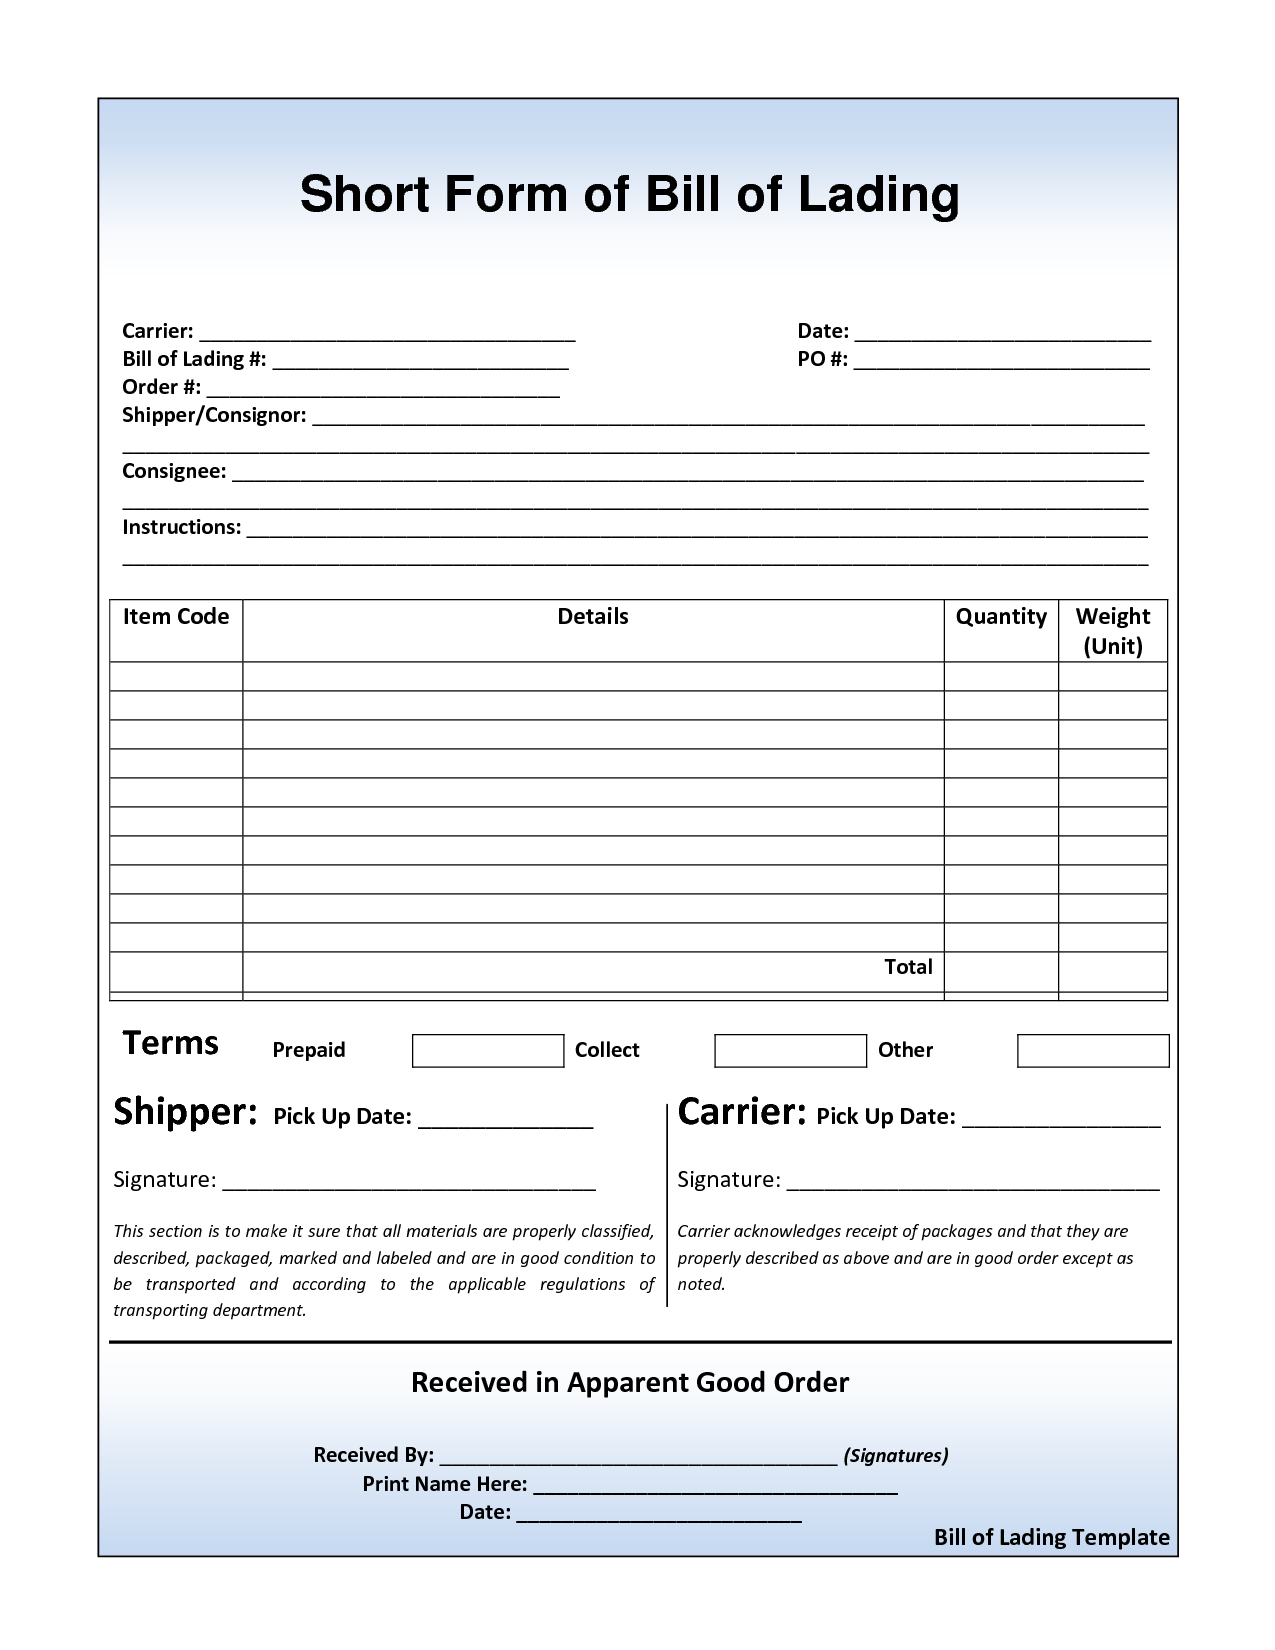 Bill Of Lading Template Free Download and 10 Best Images Of Basic Bill Of Lading Template Free Bill Of